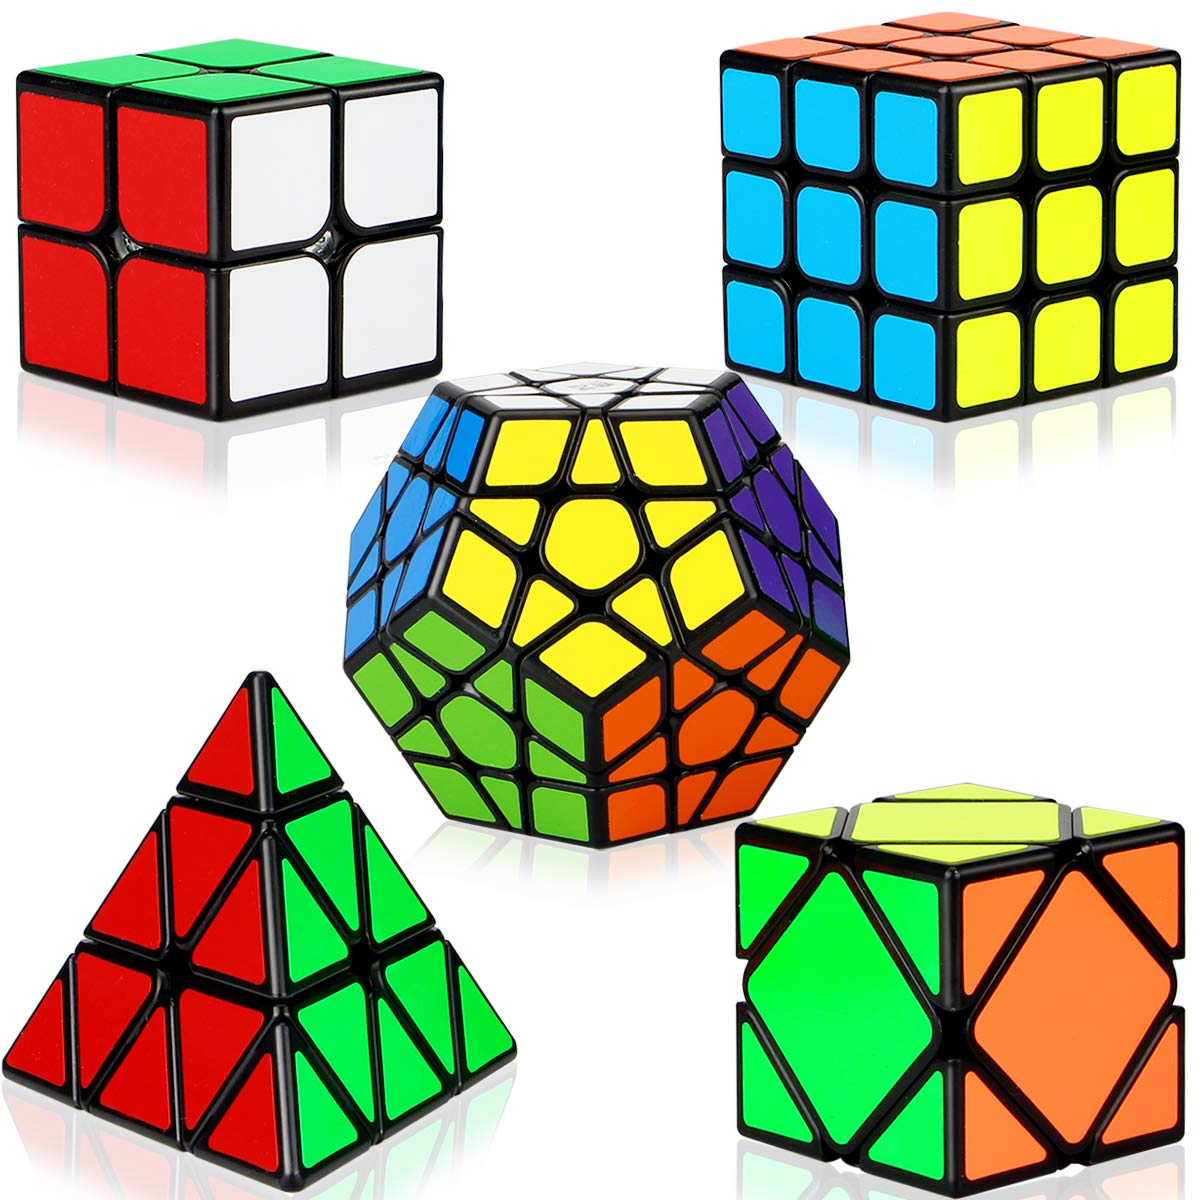 Dreampark Speed Cube Set, 5 Pack Magic Cube Bundle - 2x2x2 3x3x3 Pyramid Megaminx Skew Cube Smooth Sticker Cubes Collection Puzzle Toy for Kids by Dreampark